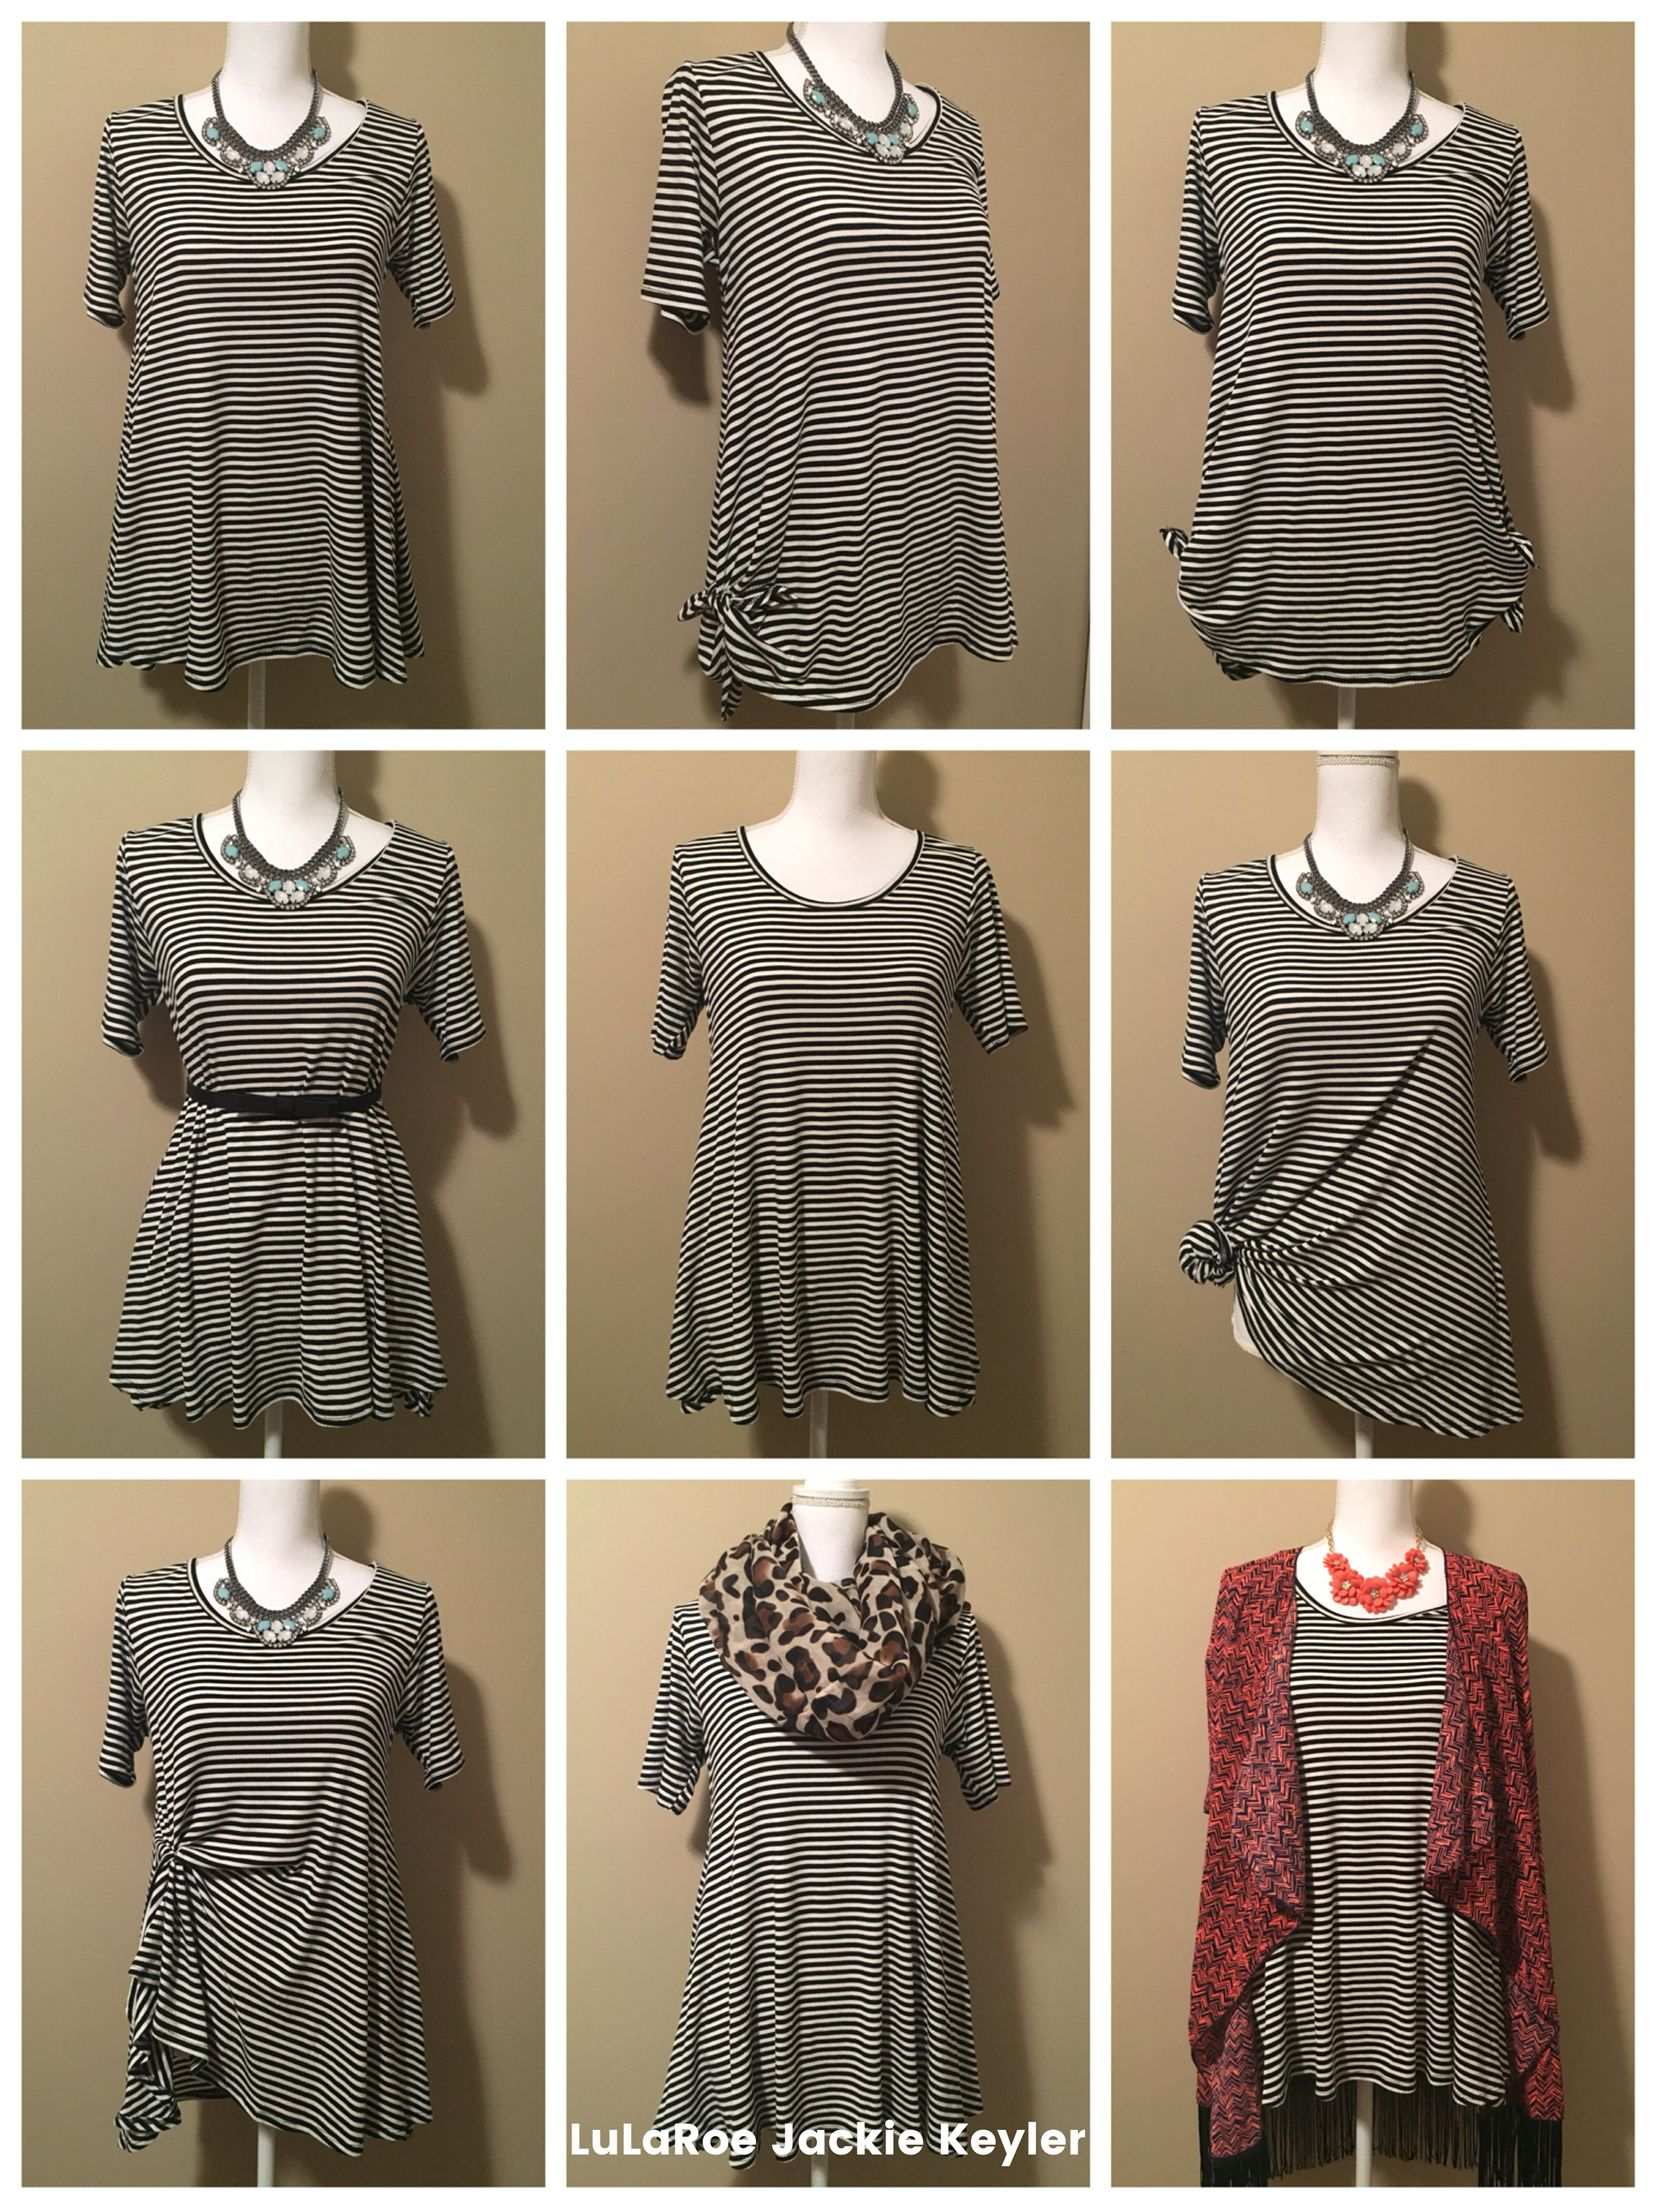 9 ways to wear your LuLaRoe Perfect Tee! | LuLaRoe Outfit ...